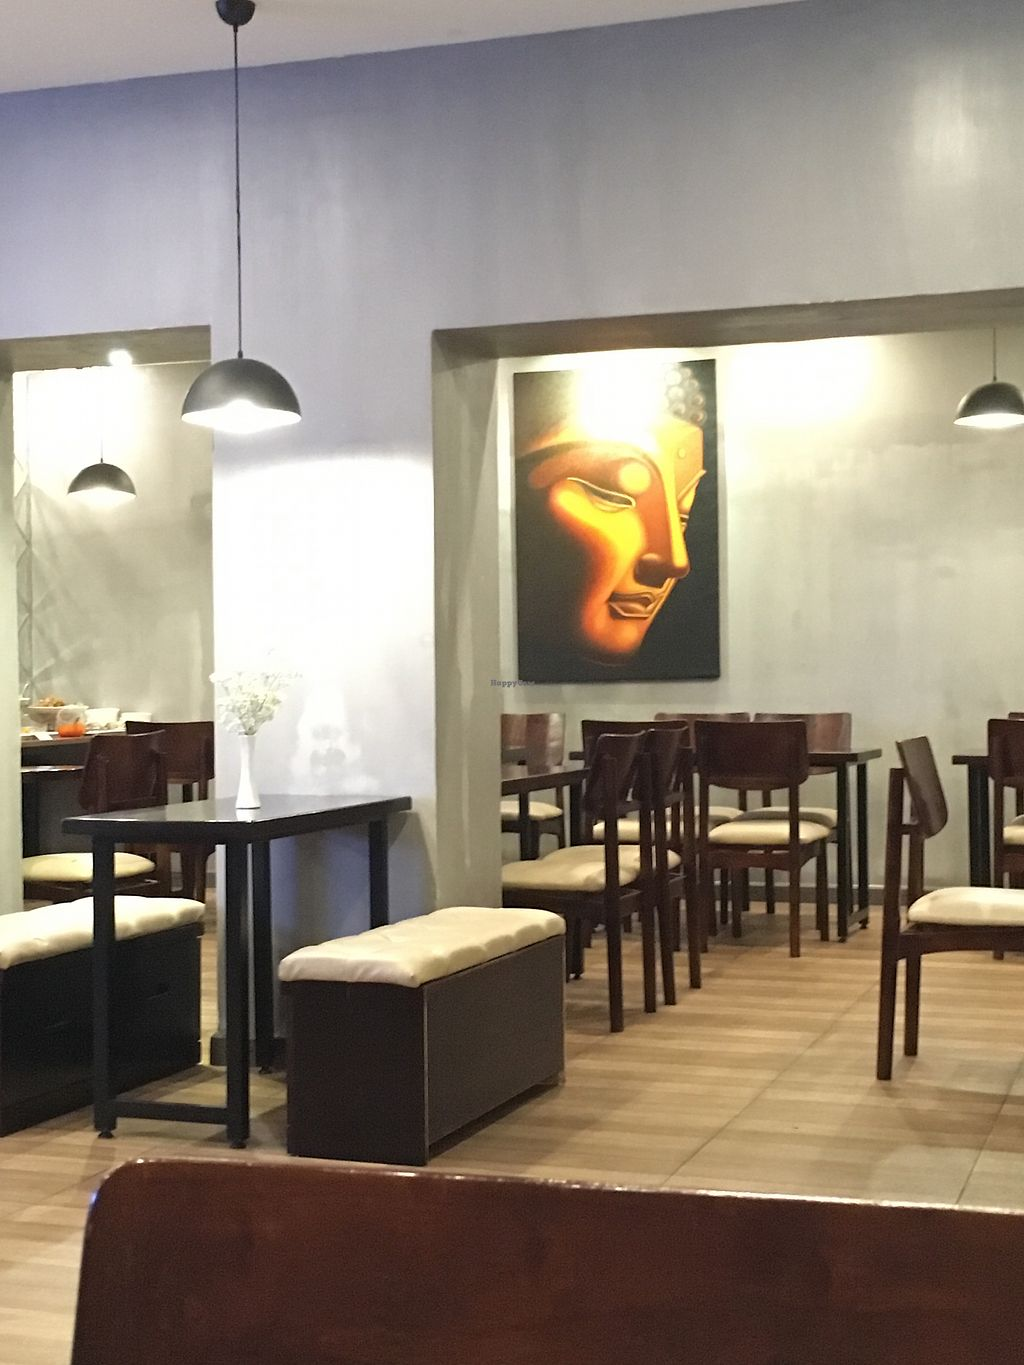 """Photo of Maha Vegan  by <a href=""""/members/profile/BastianSteinbach"""">BastianSteinbach</a> <br/>Inside the restaurant  <br/> March 18, 2018  - <a href='/contact/abuse/image/111634/372212'>Report</a>"""